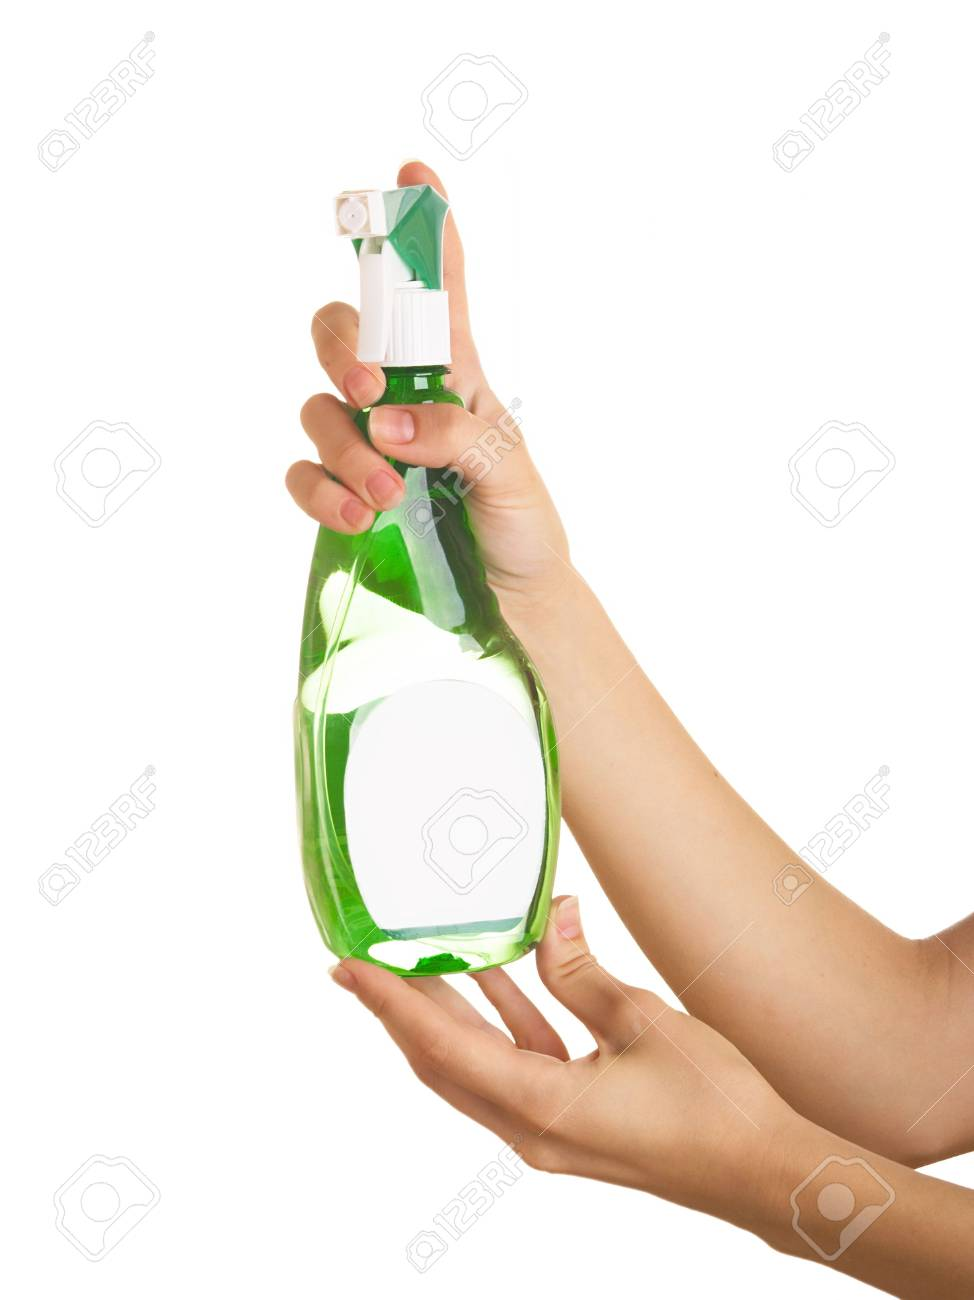 Spraying deodorant on a white background in female hands Stock Photo - 5311065